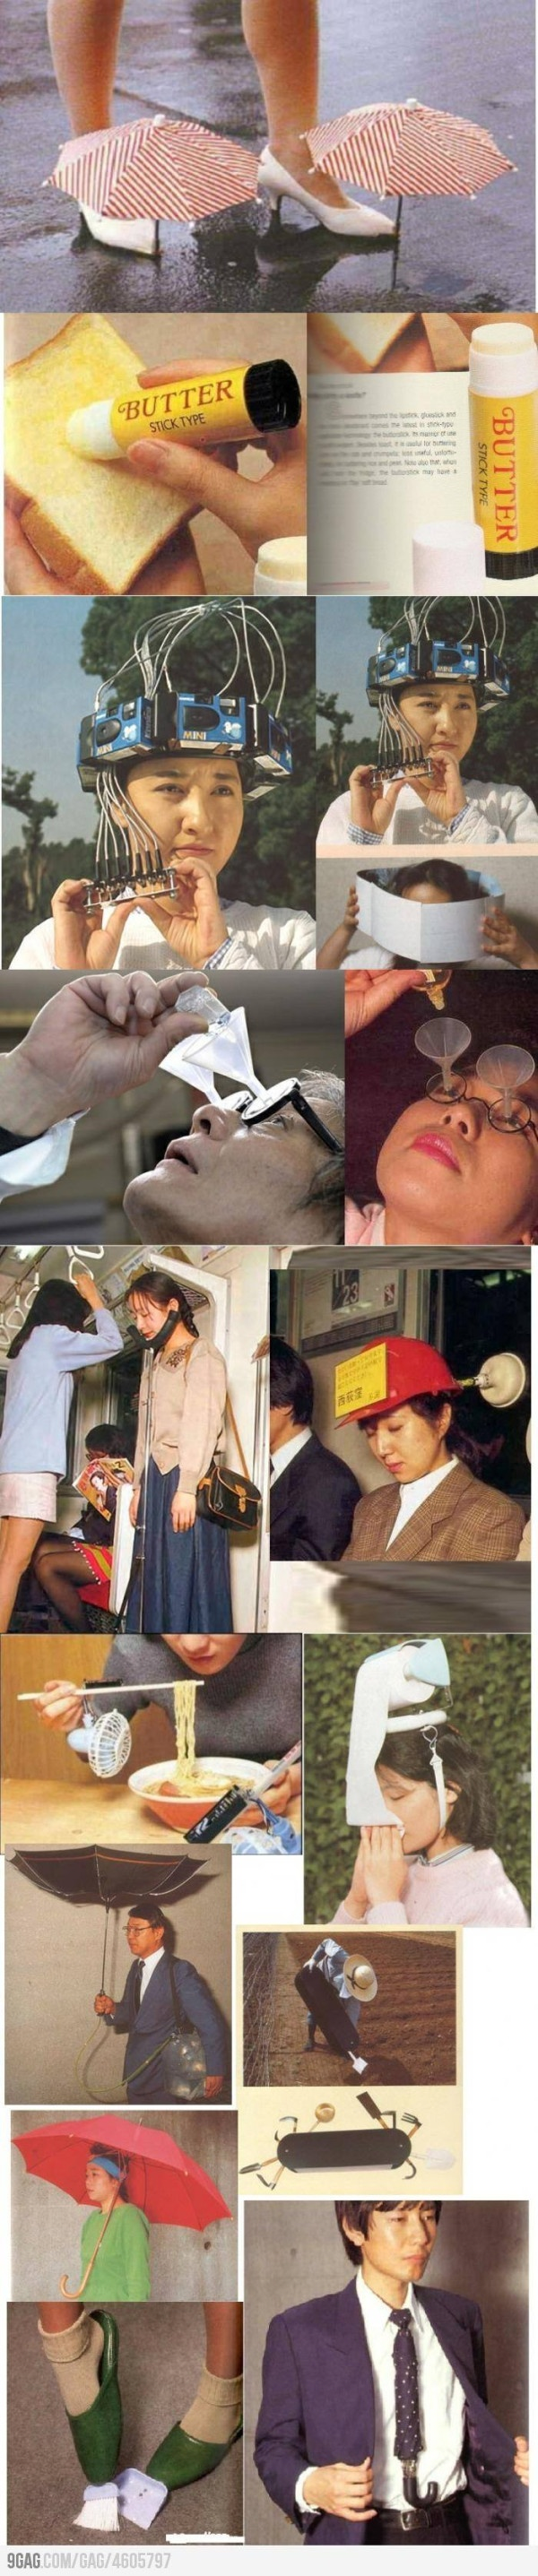 Useless chinese inventions! Some don't look completely useless to me! LOL